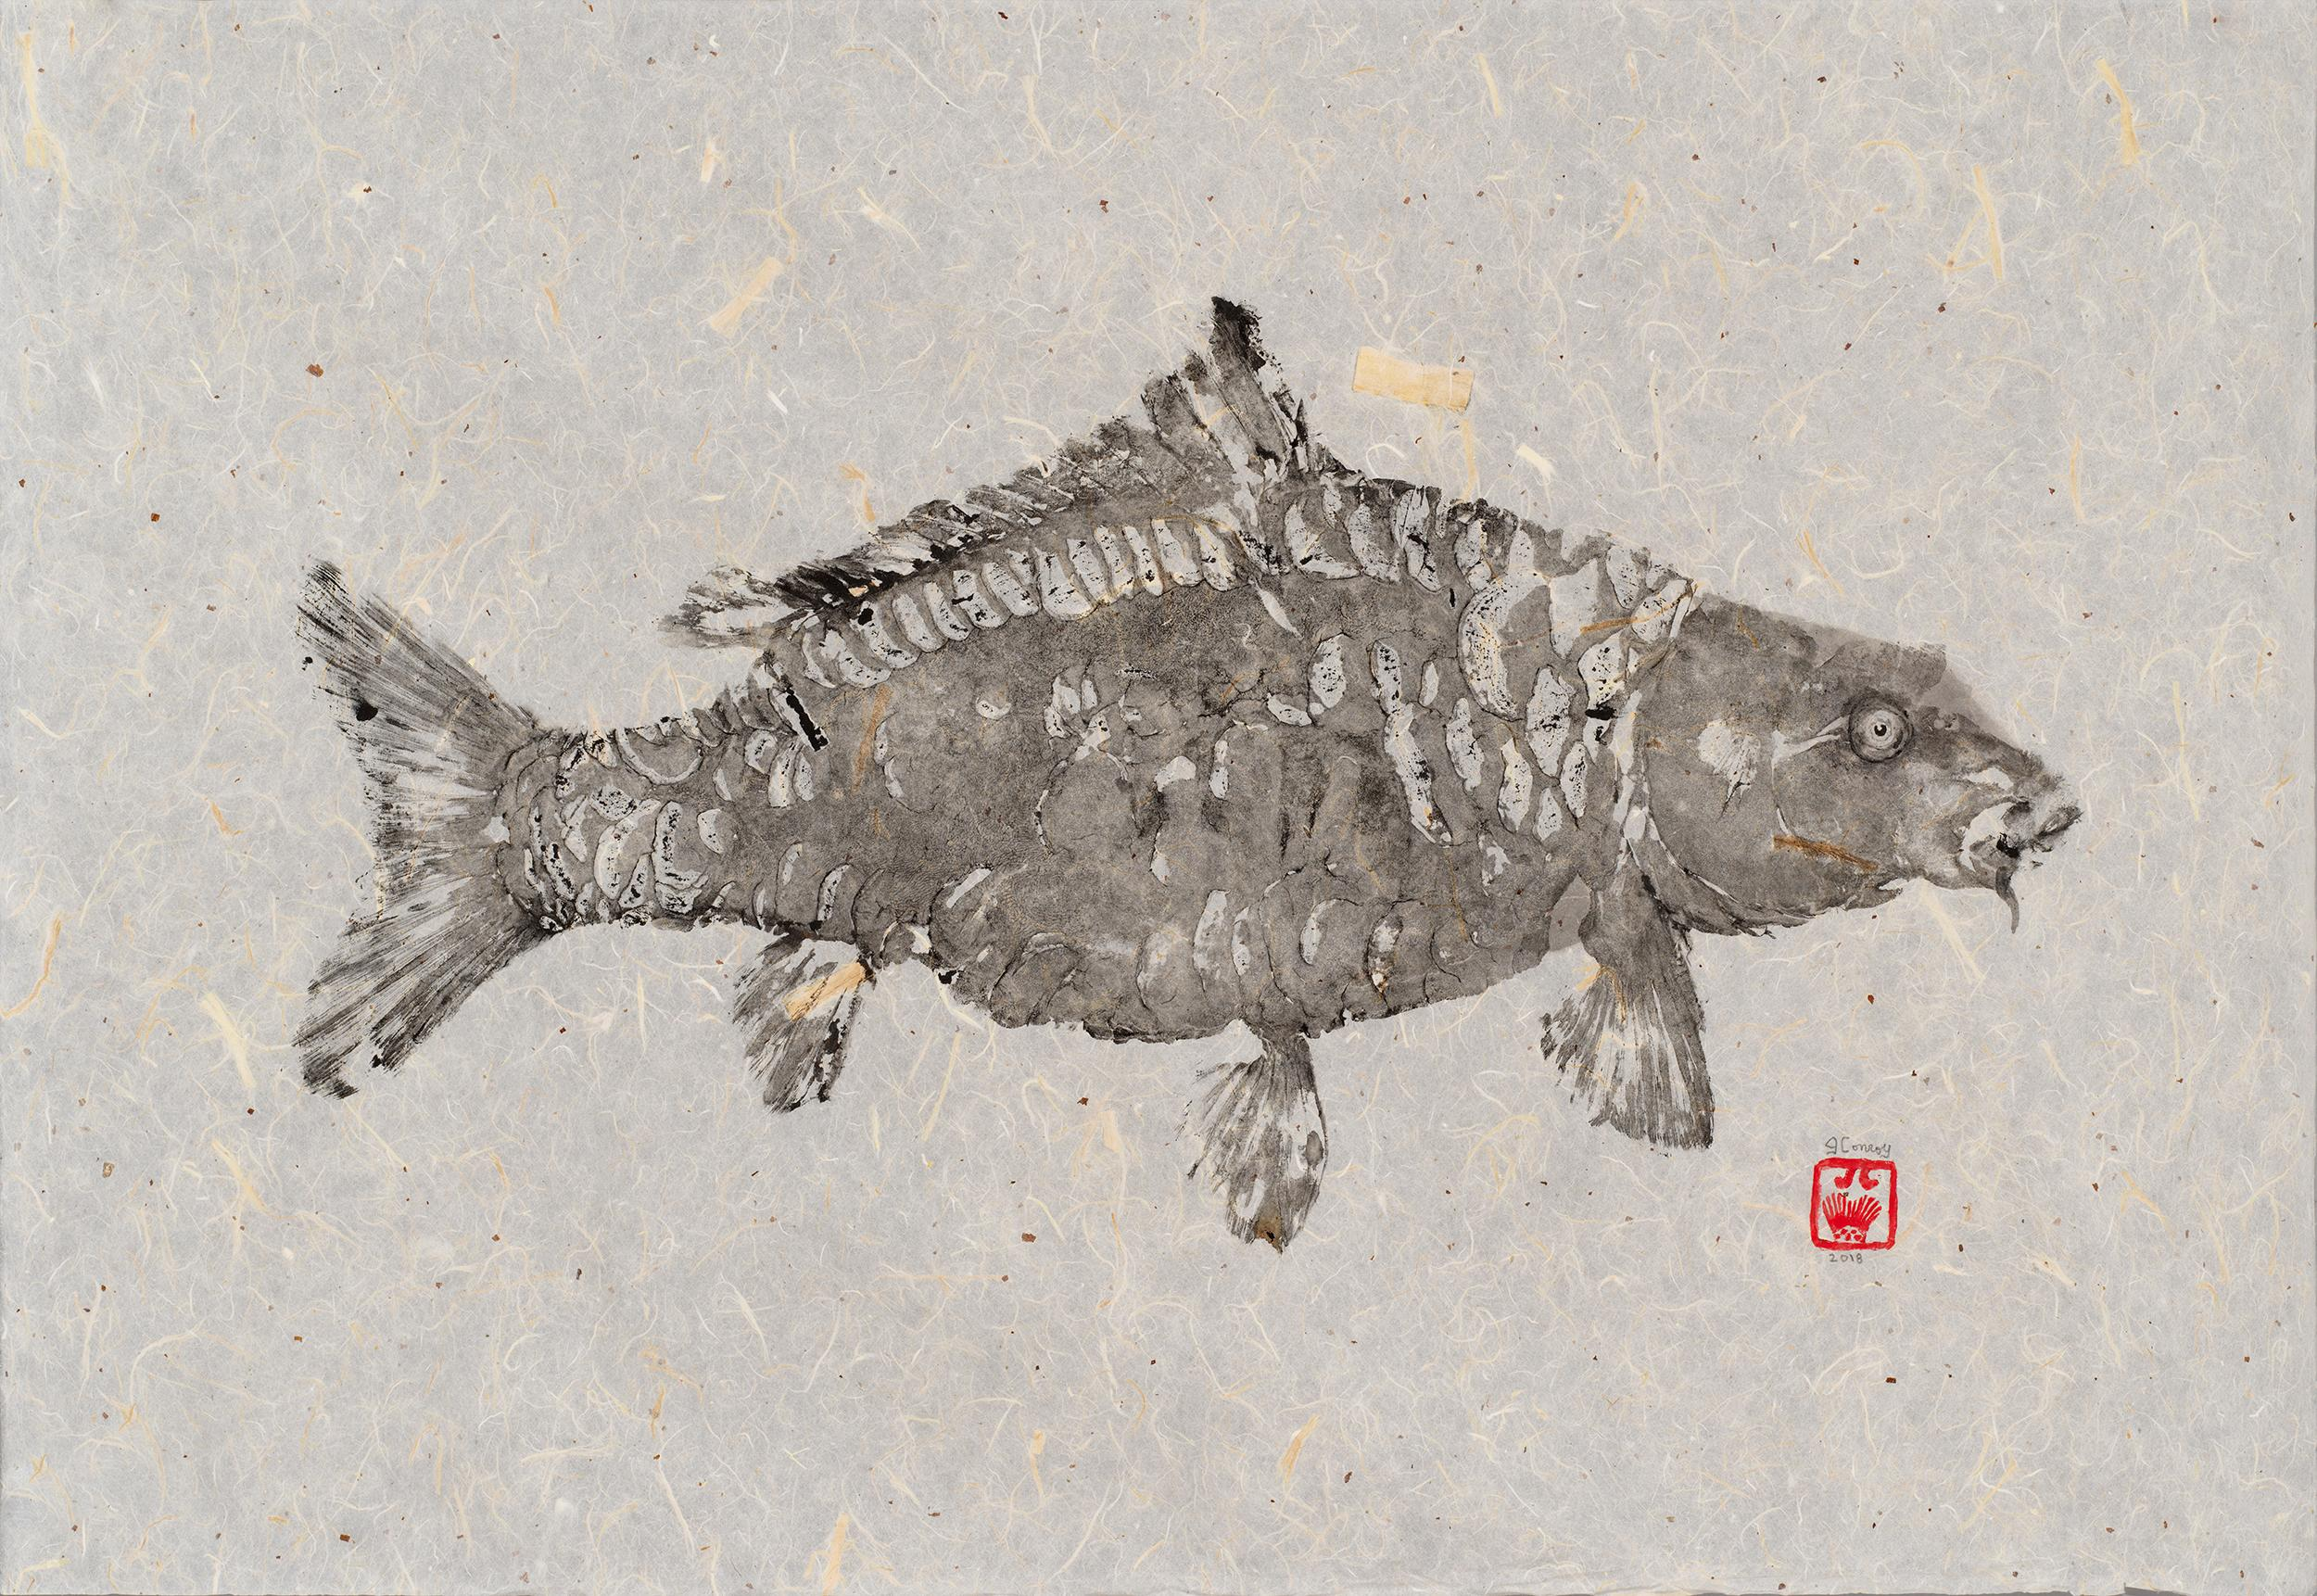 Black Mirror - Gyotaku Technique Fish Painting with Sumi Ink on Mulberry Paper